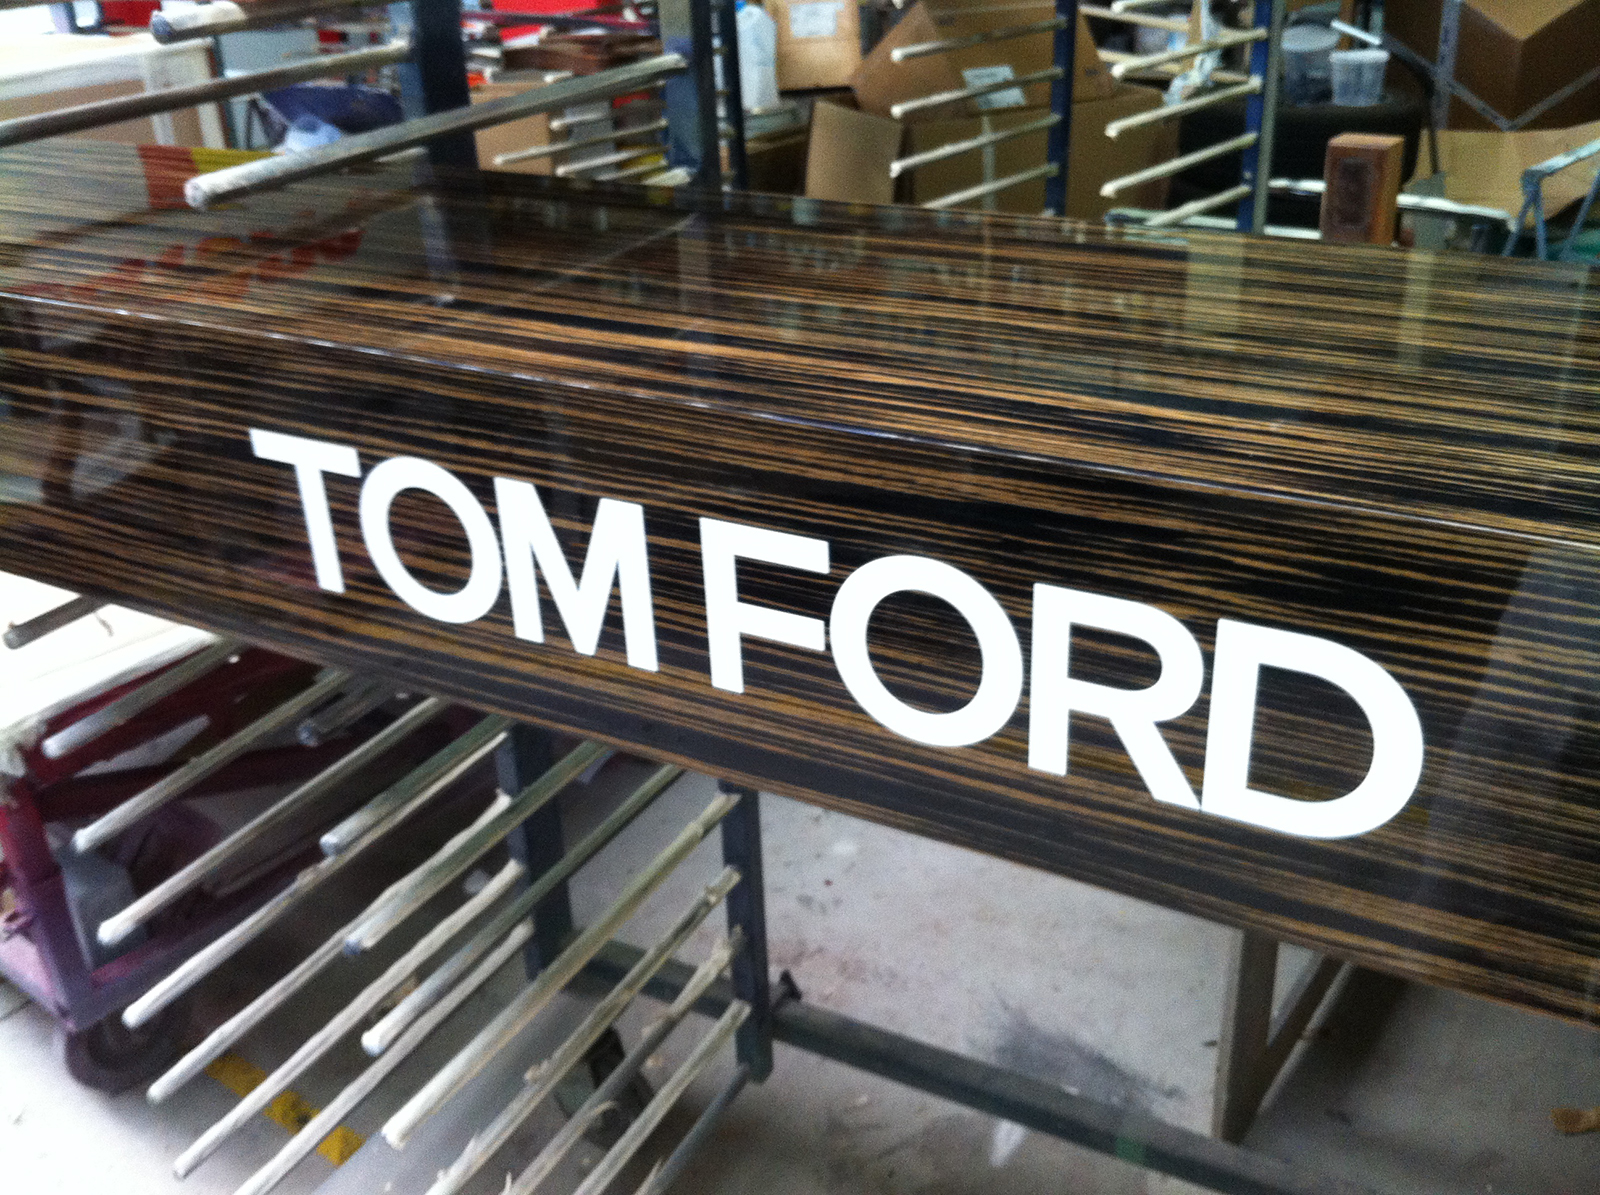 Agencement Tom Ford